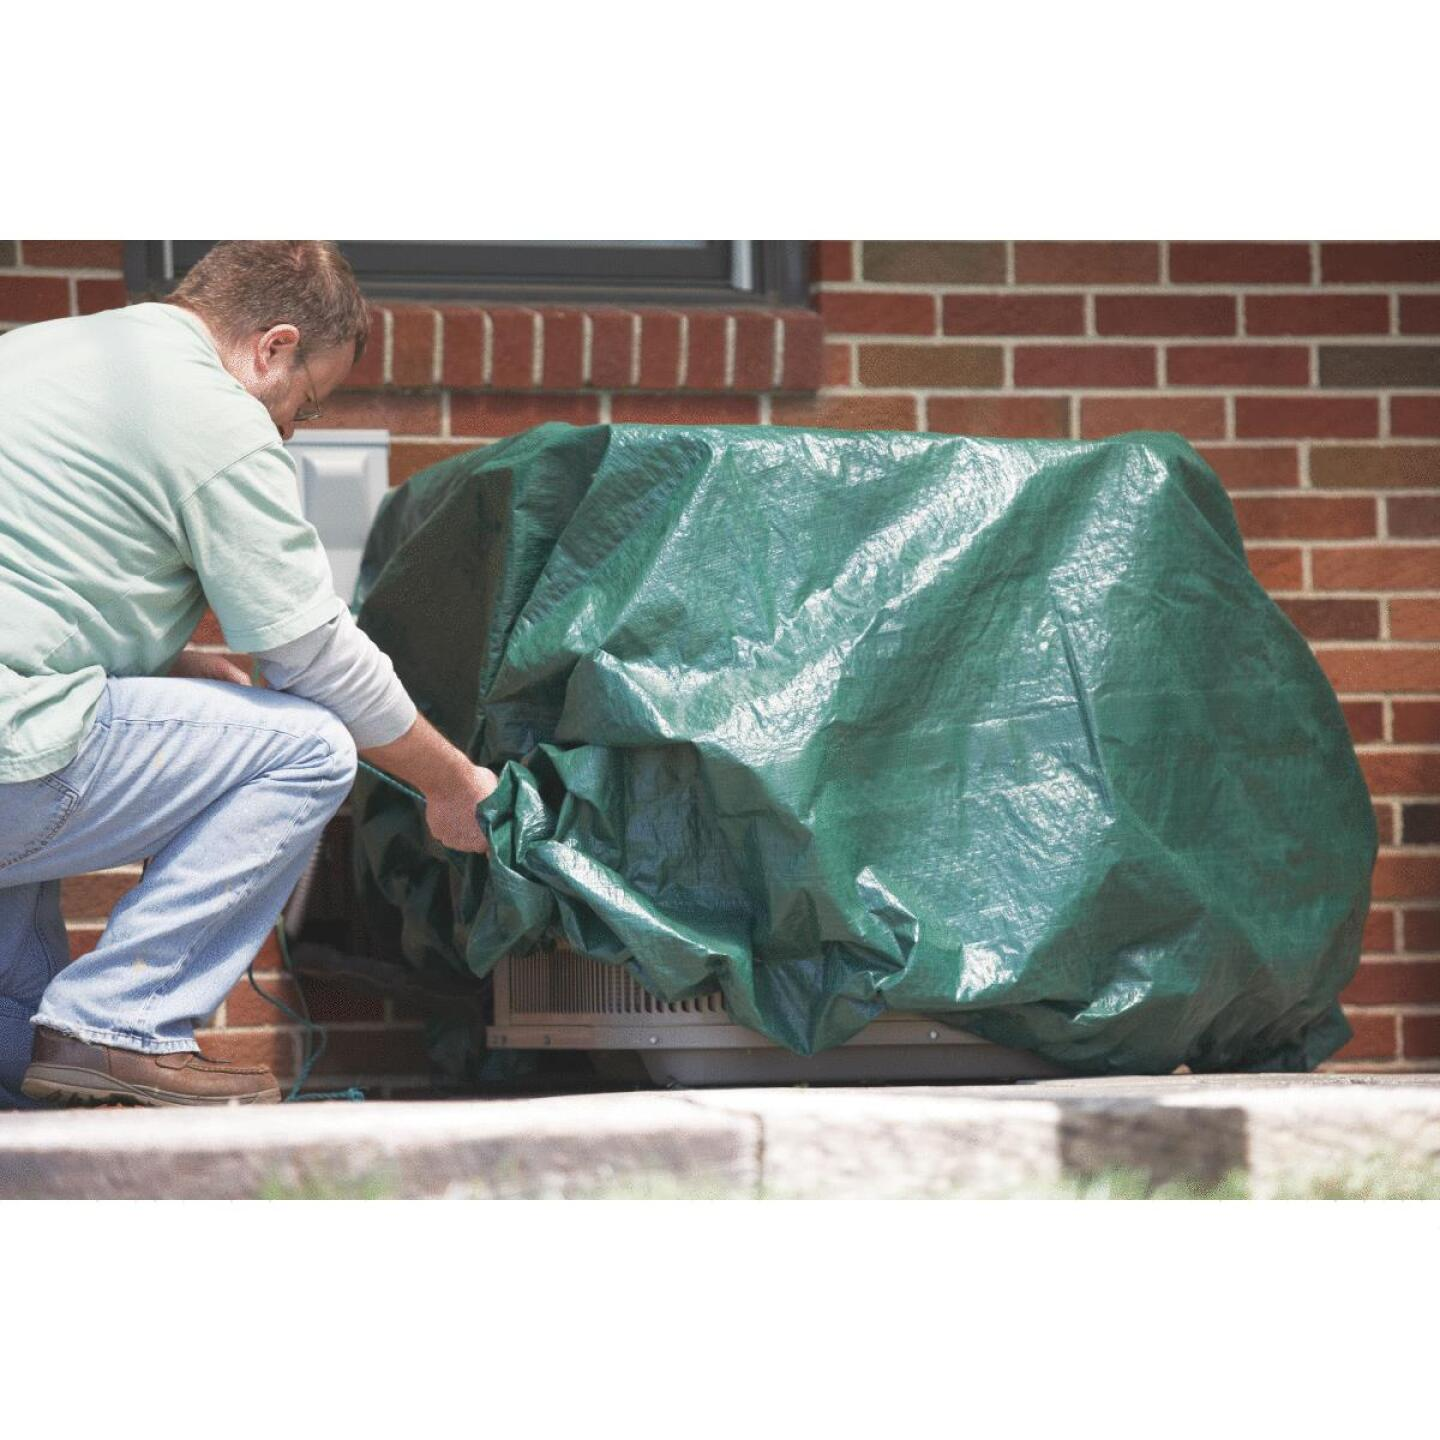 Do it 9 Ft. x 9 Ft. Poly Fabric Green Lawn Cleanup Tarp Image 5